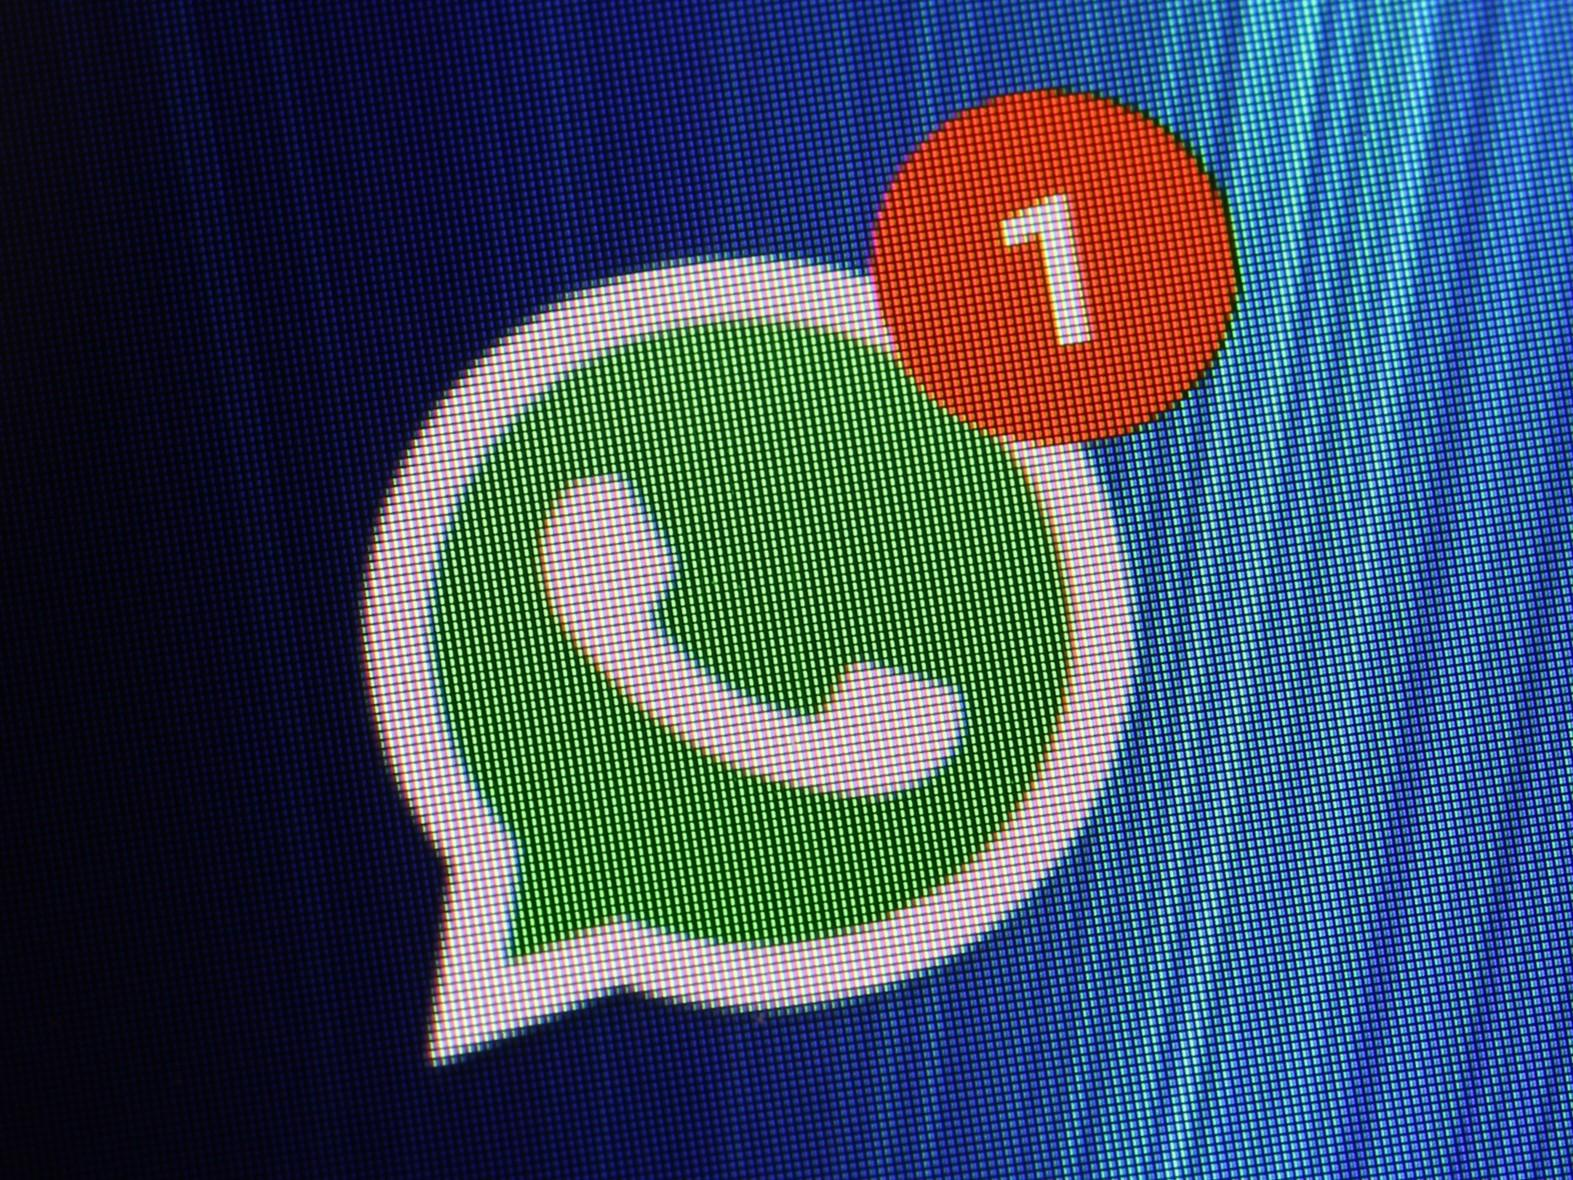 WhatsApp Update Finally Brings Popular App to iPad